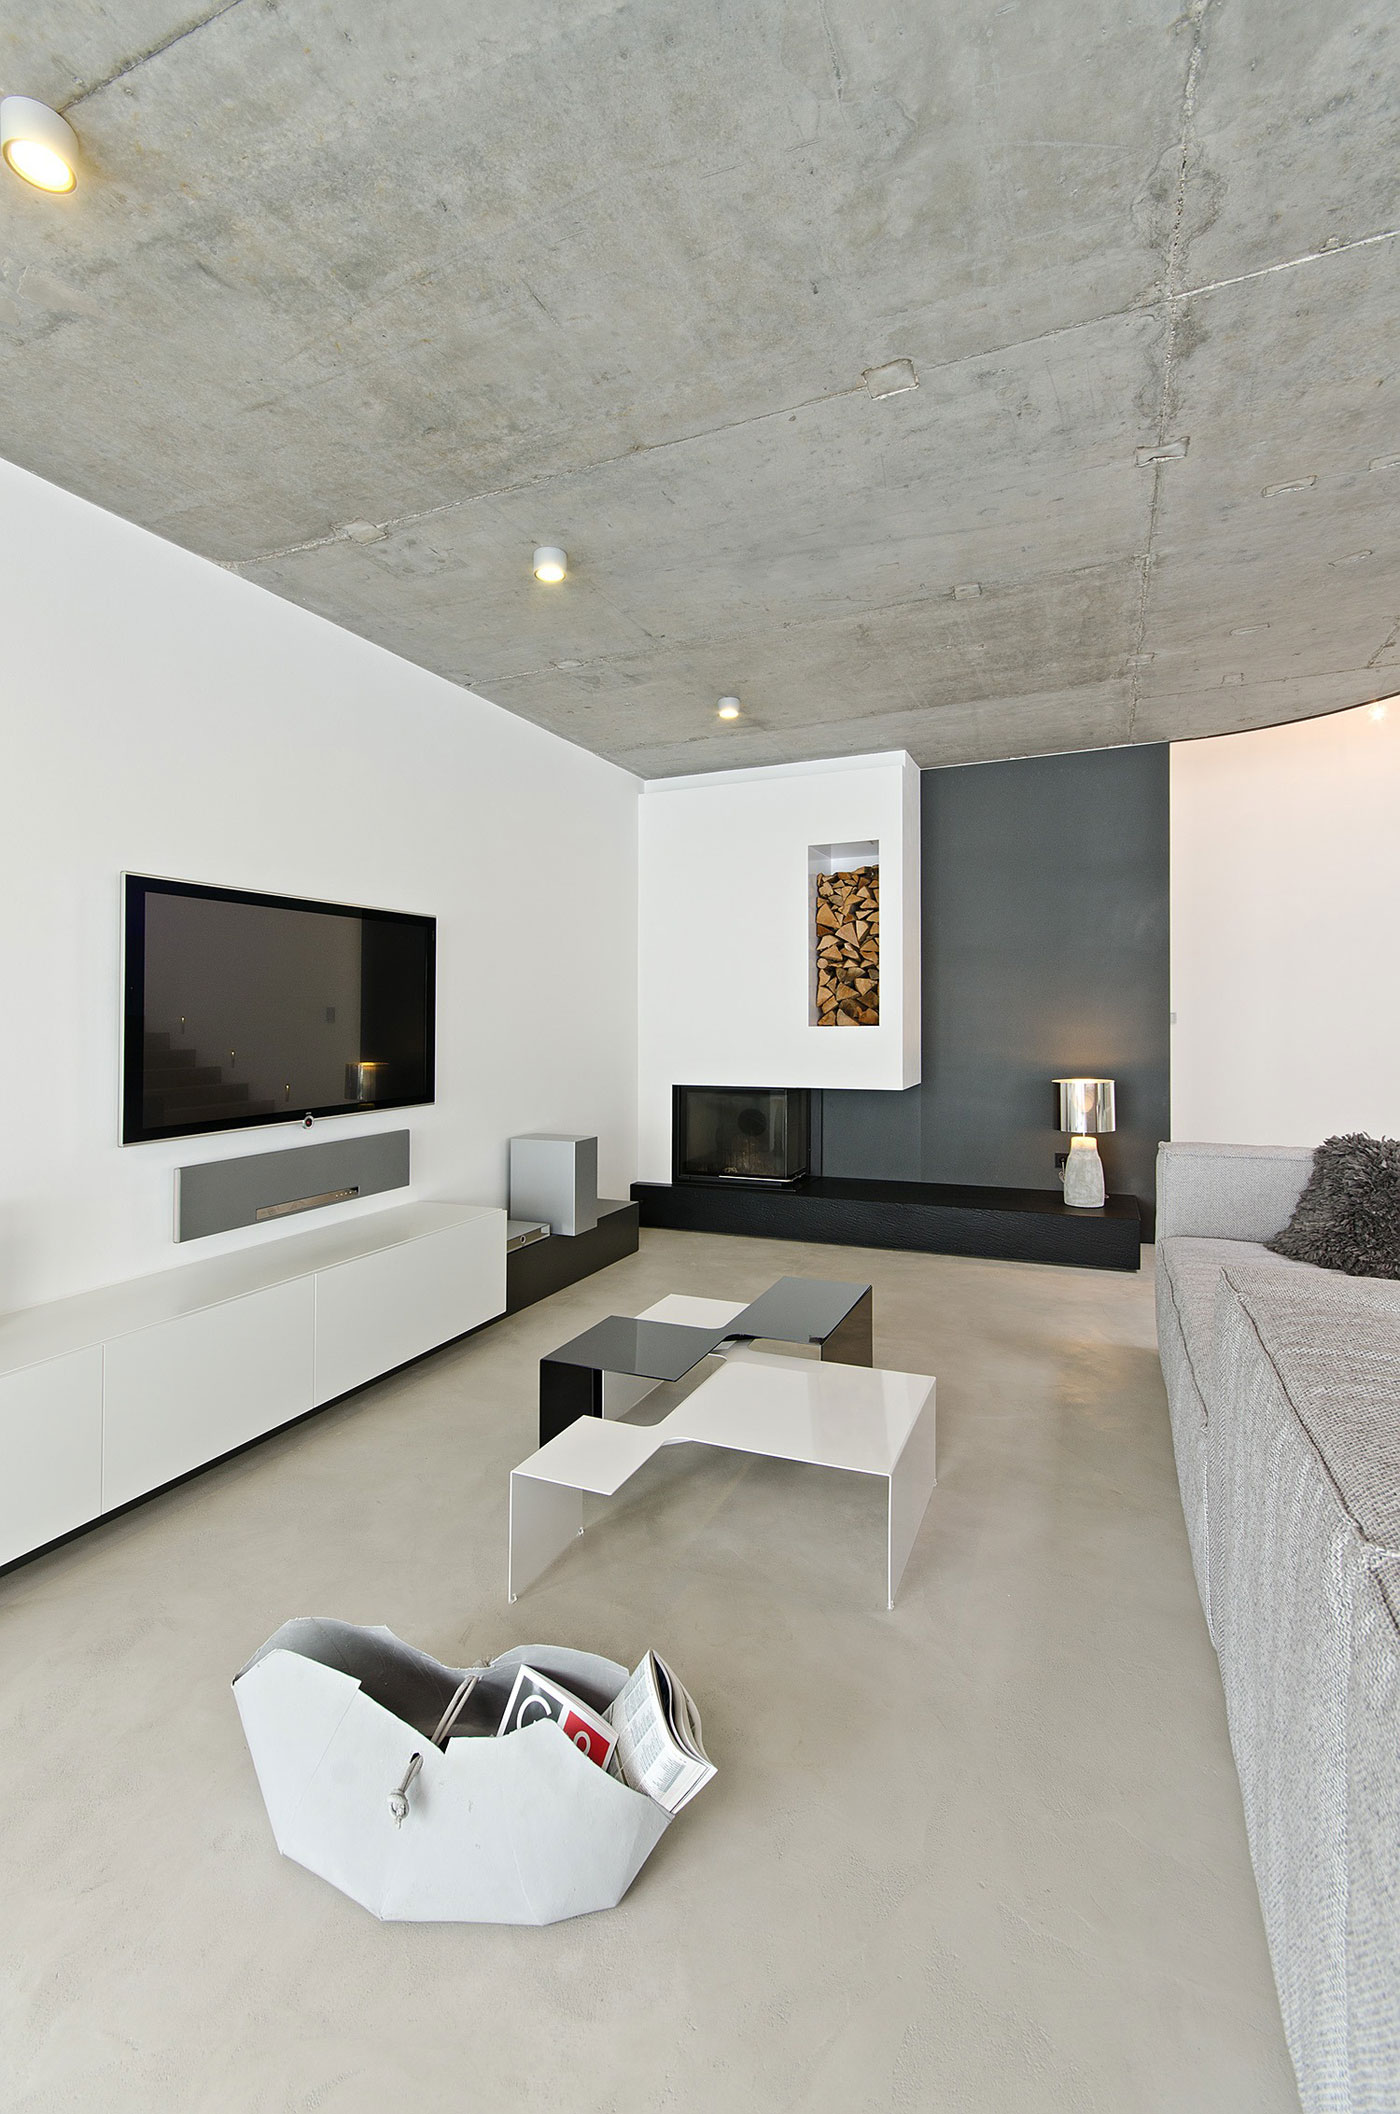 Concrete Interior by oooox (2)